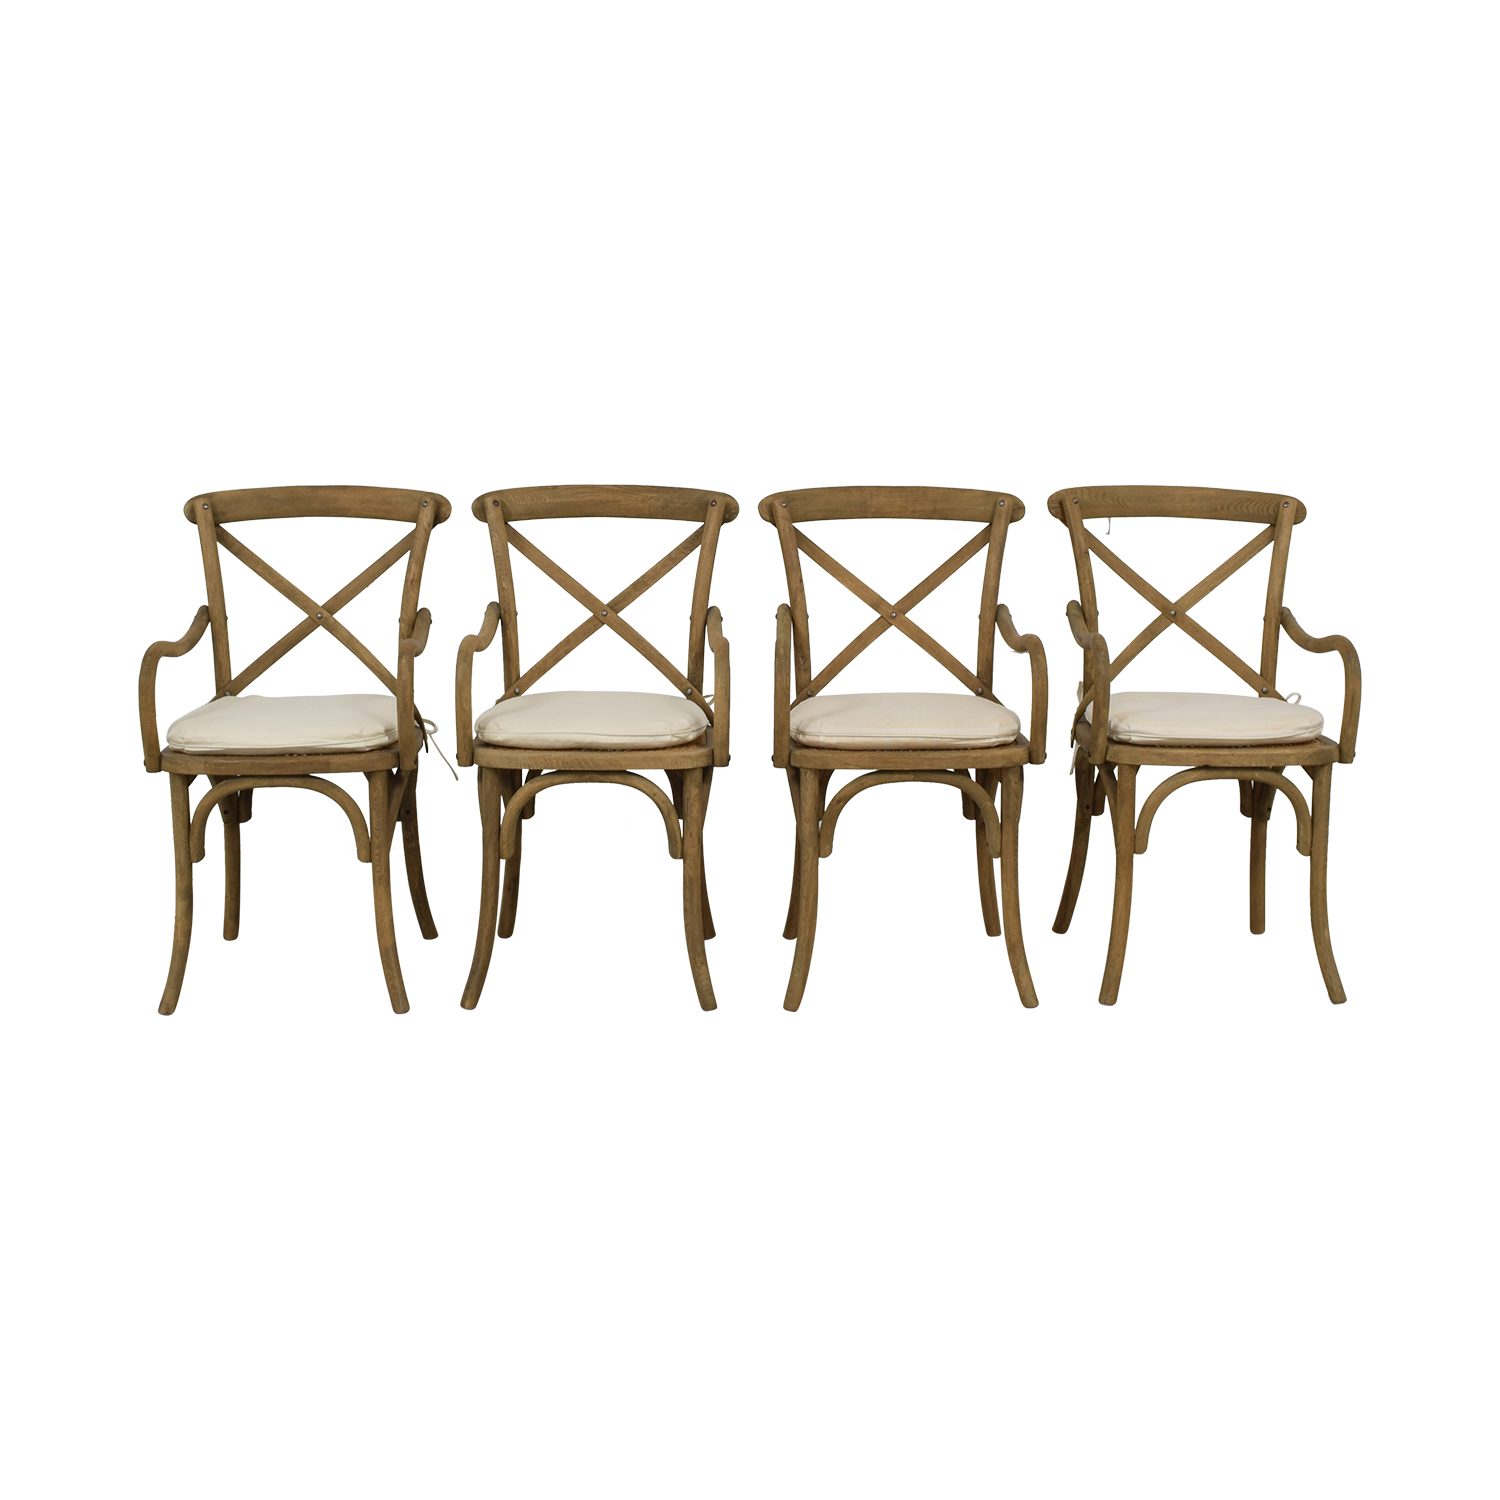 Restoration Hardware Restoration Hardware Madeleine Armchairs Rustic Natural with White Cushions used